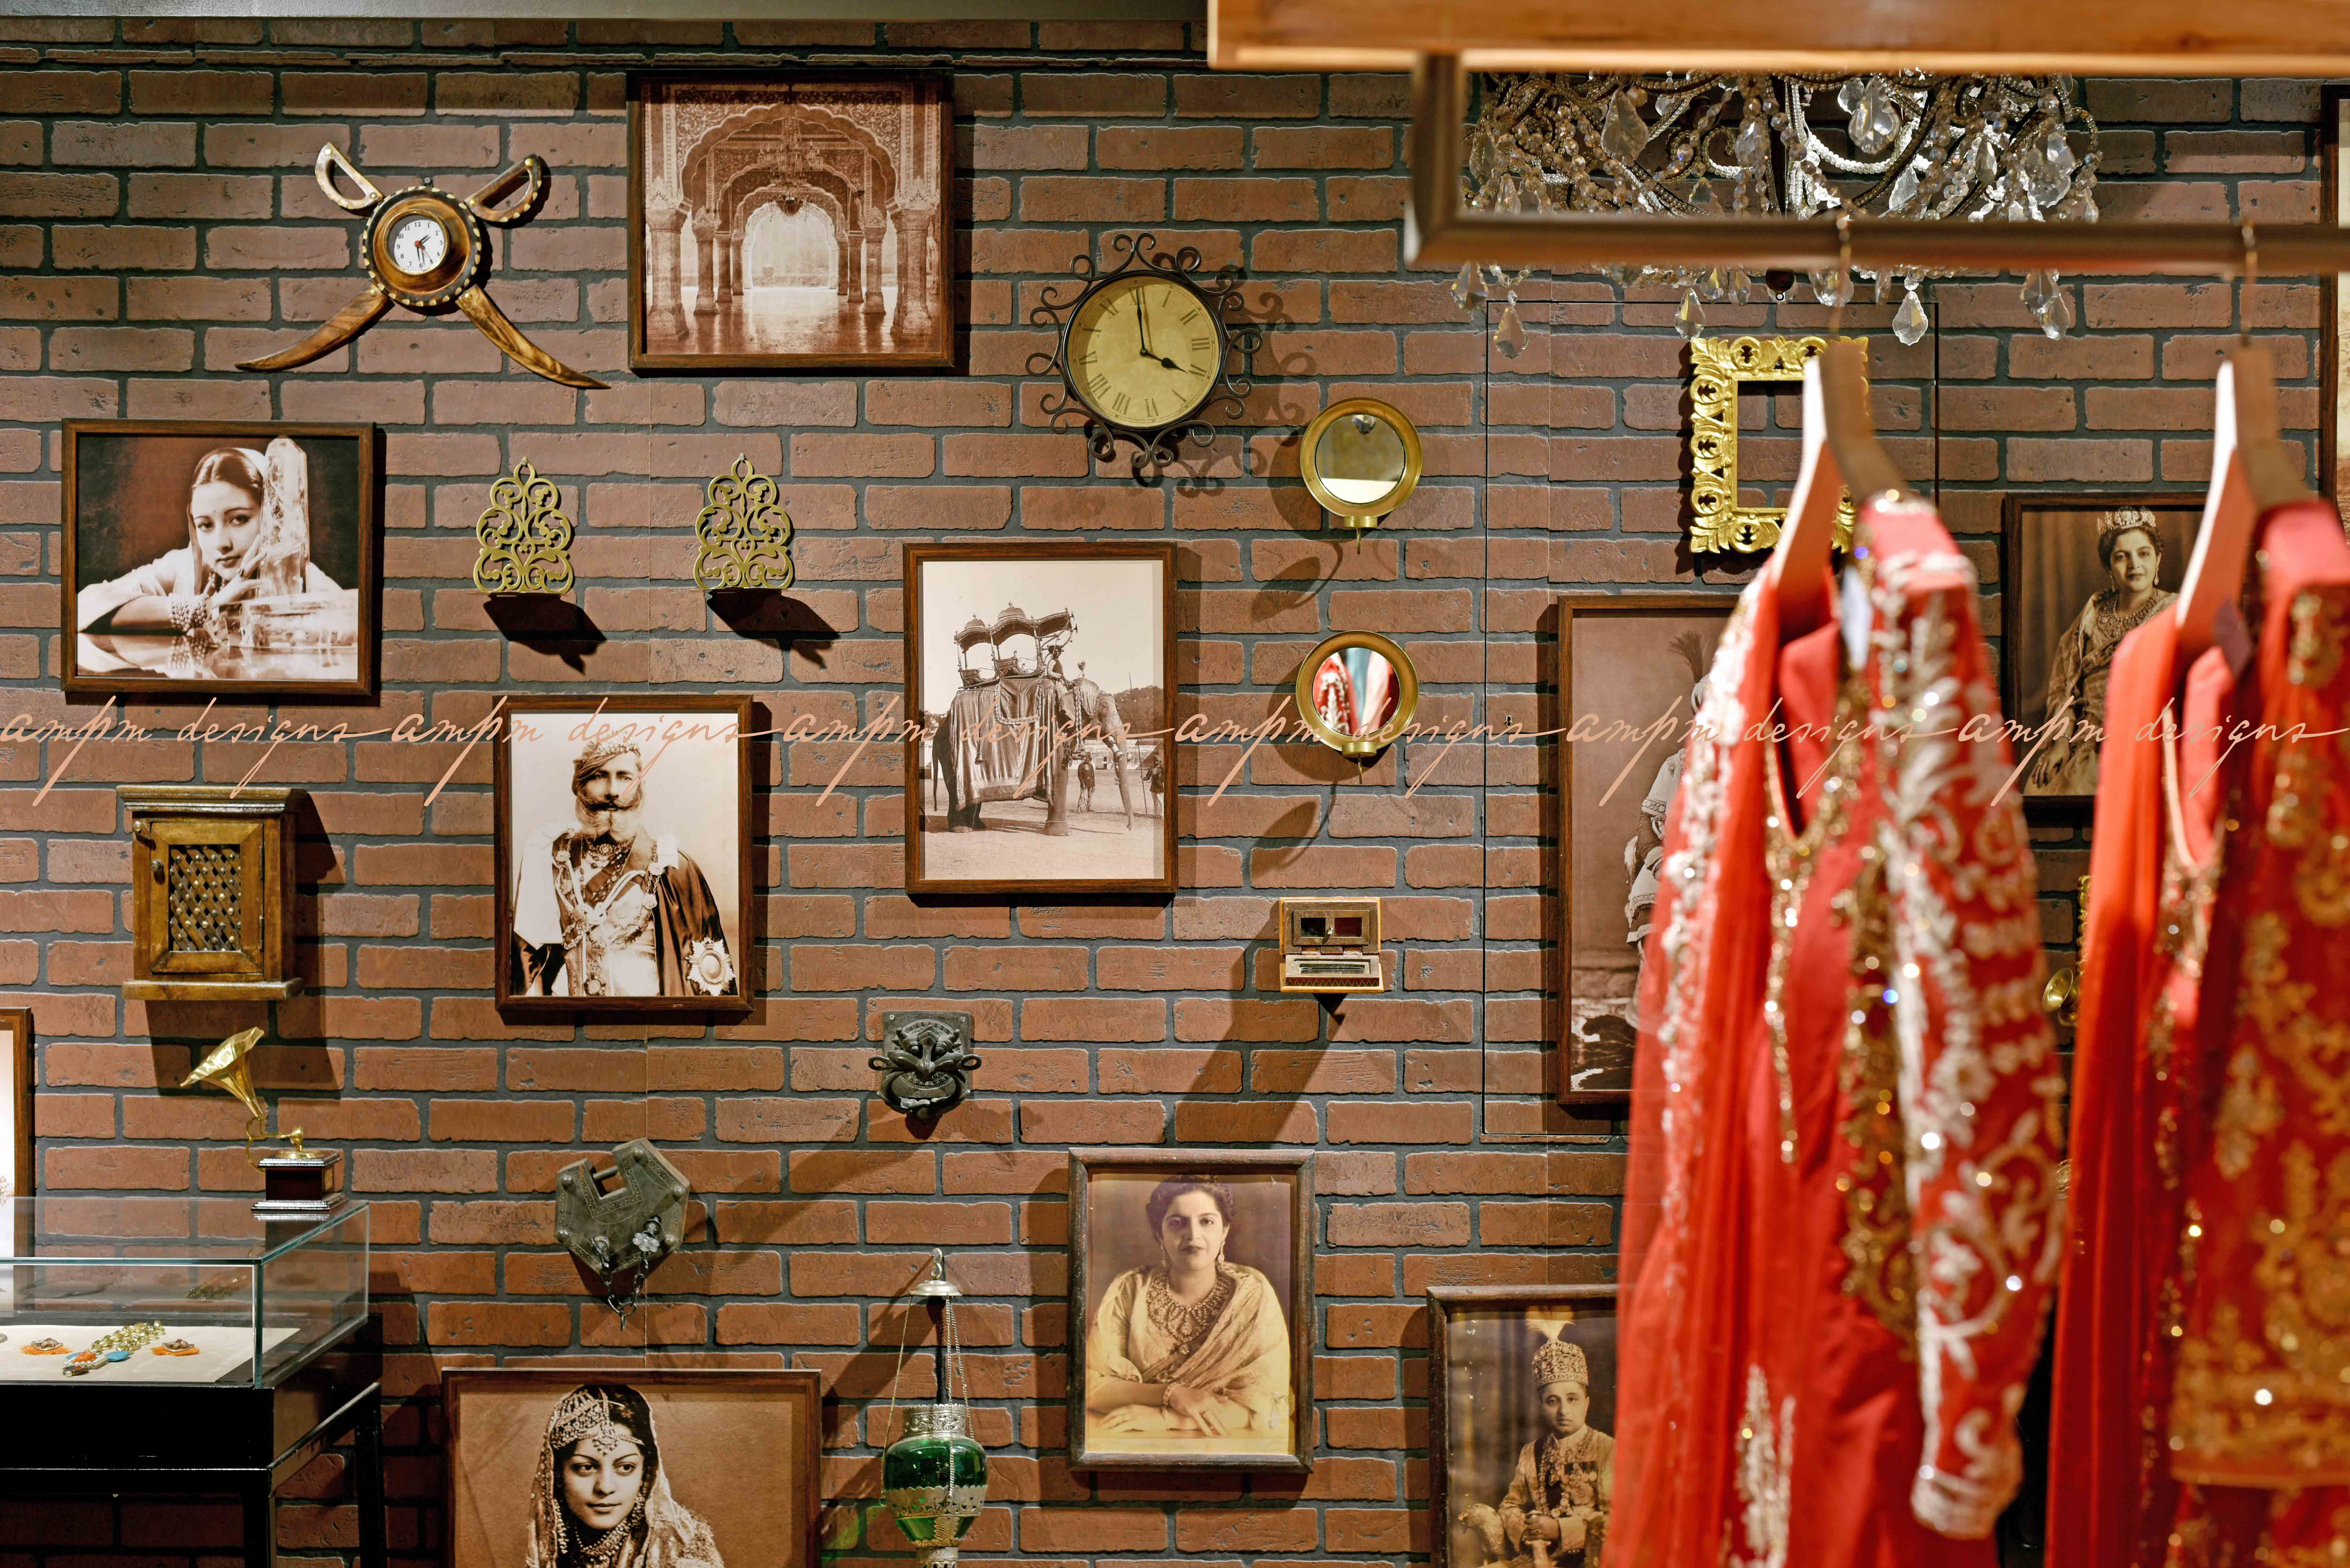 Display Wall Brick Wall Accesesories Indian Design Luxury